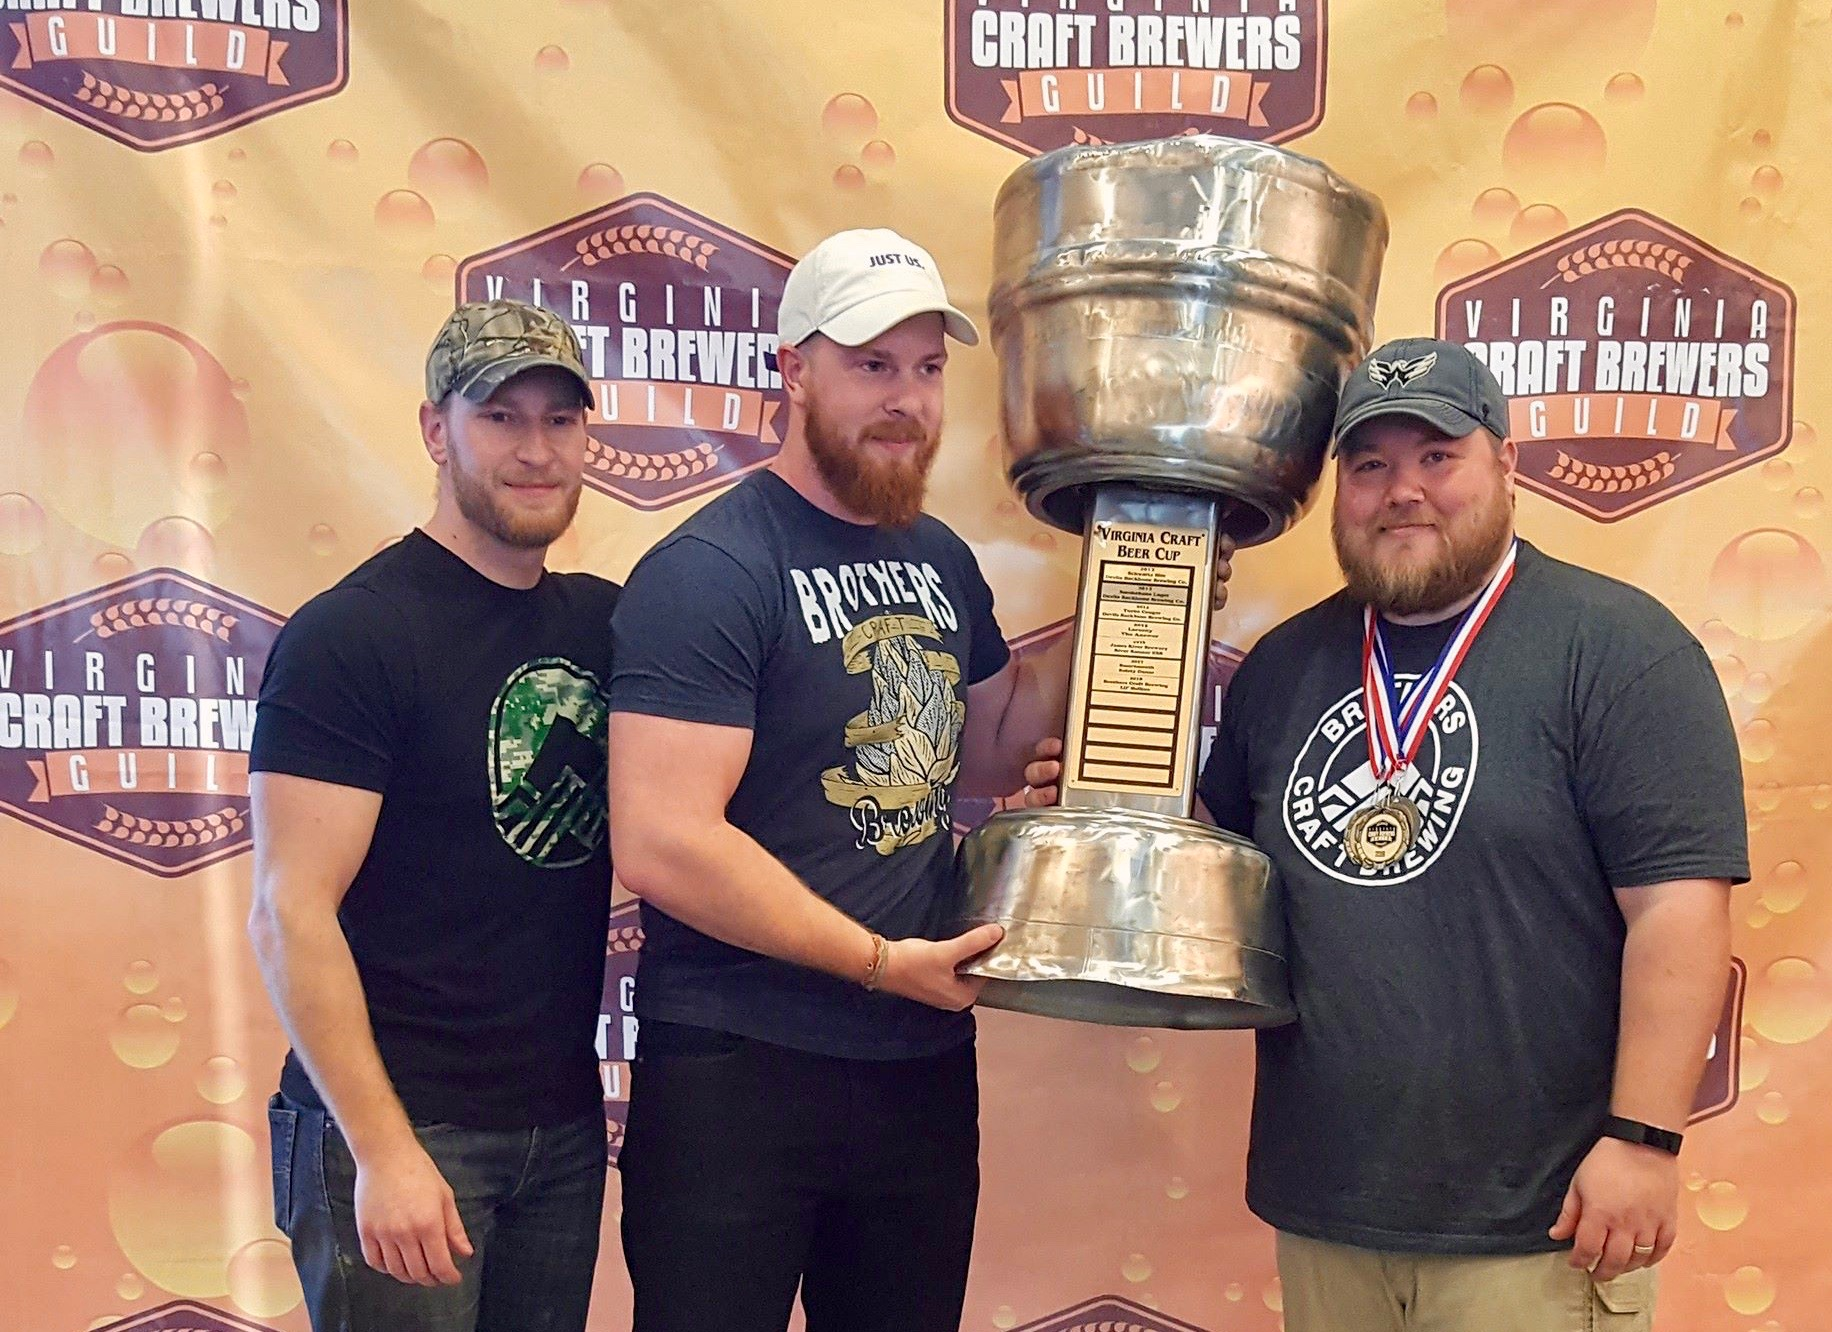 Brothers Craft Brewers Win 2018 VA Beer Cup